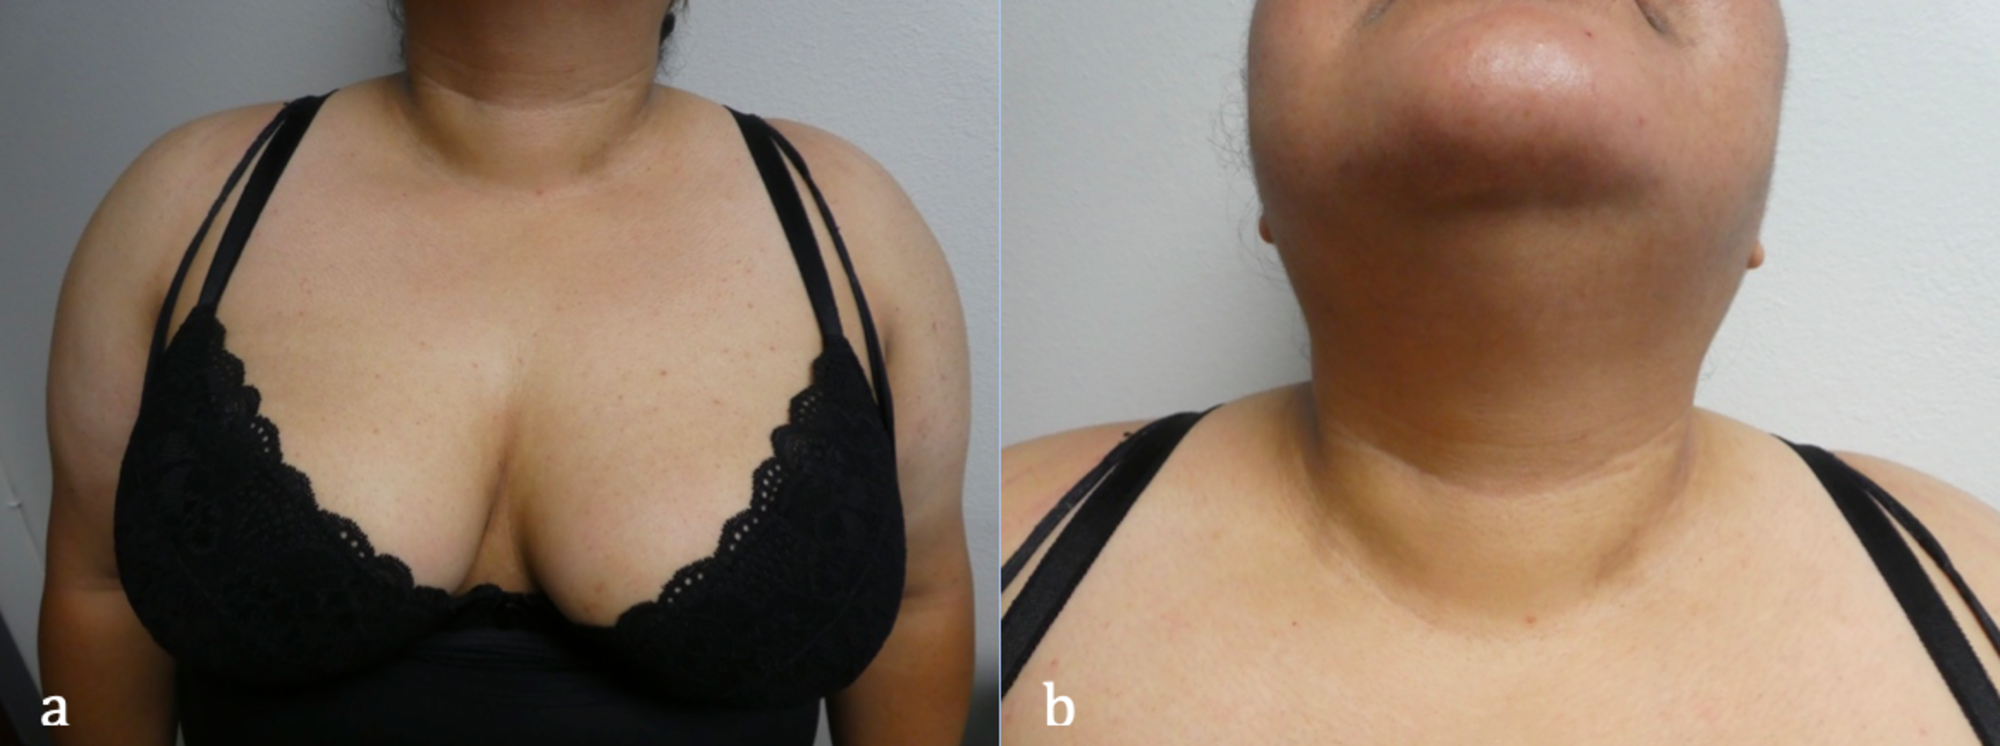 confluent and reticulated papillomatosis neck)